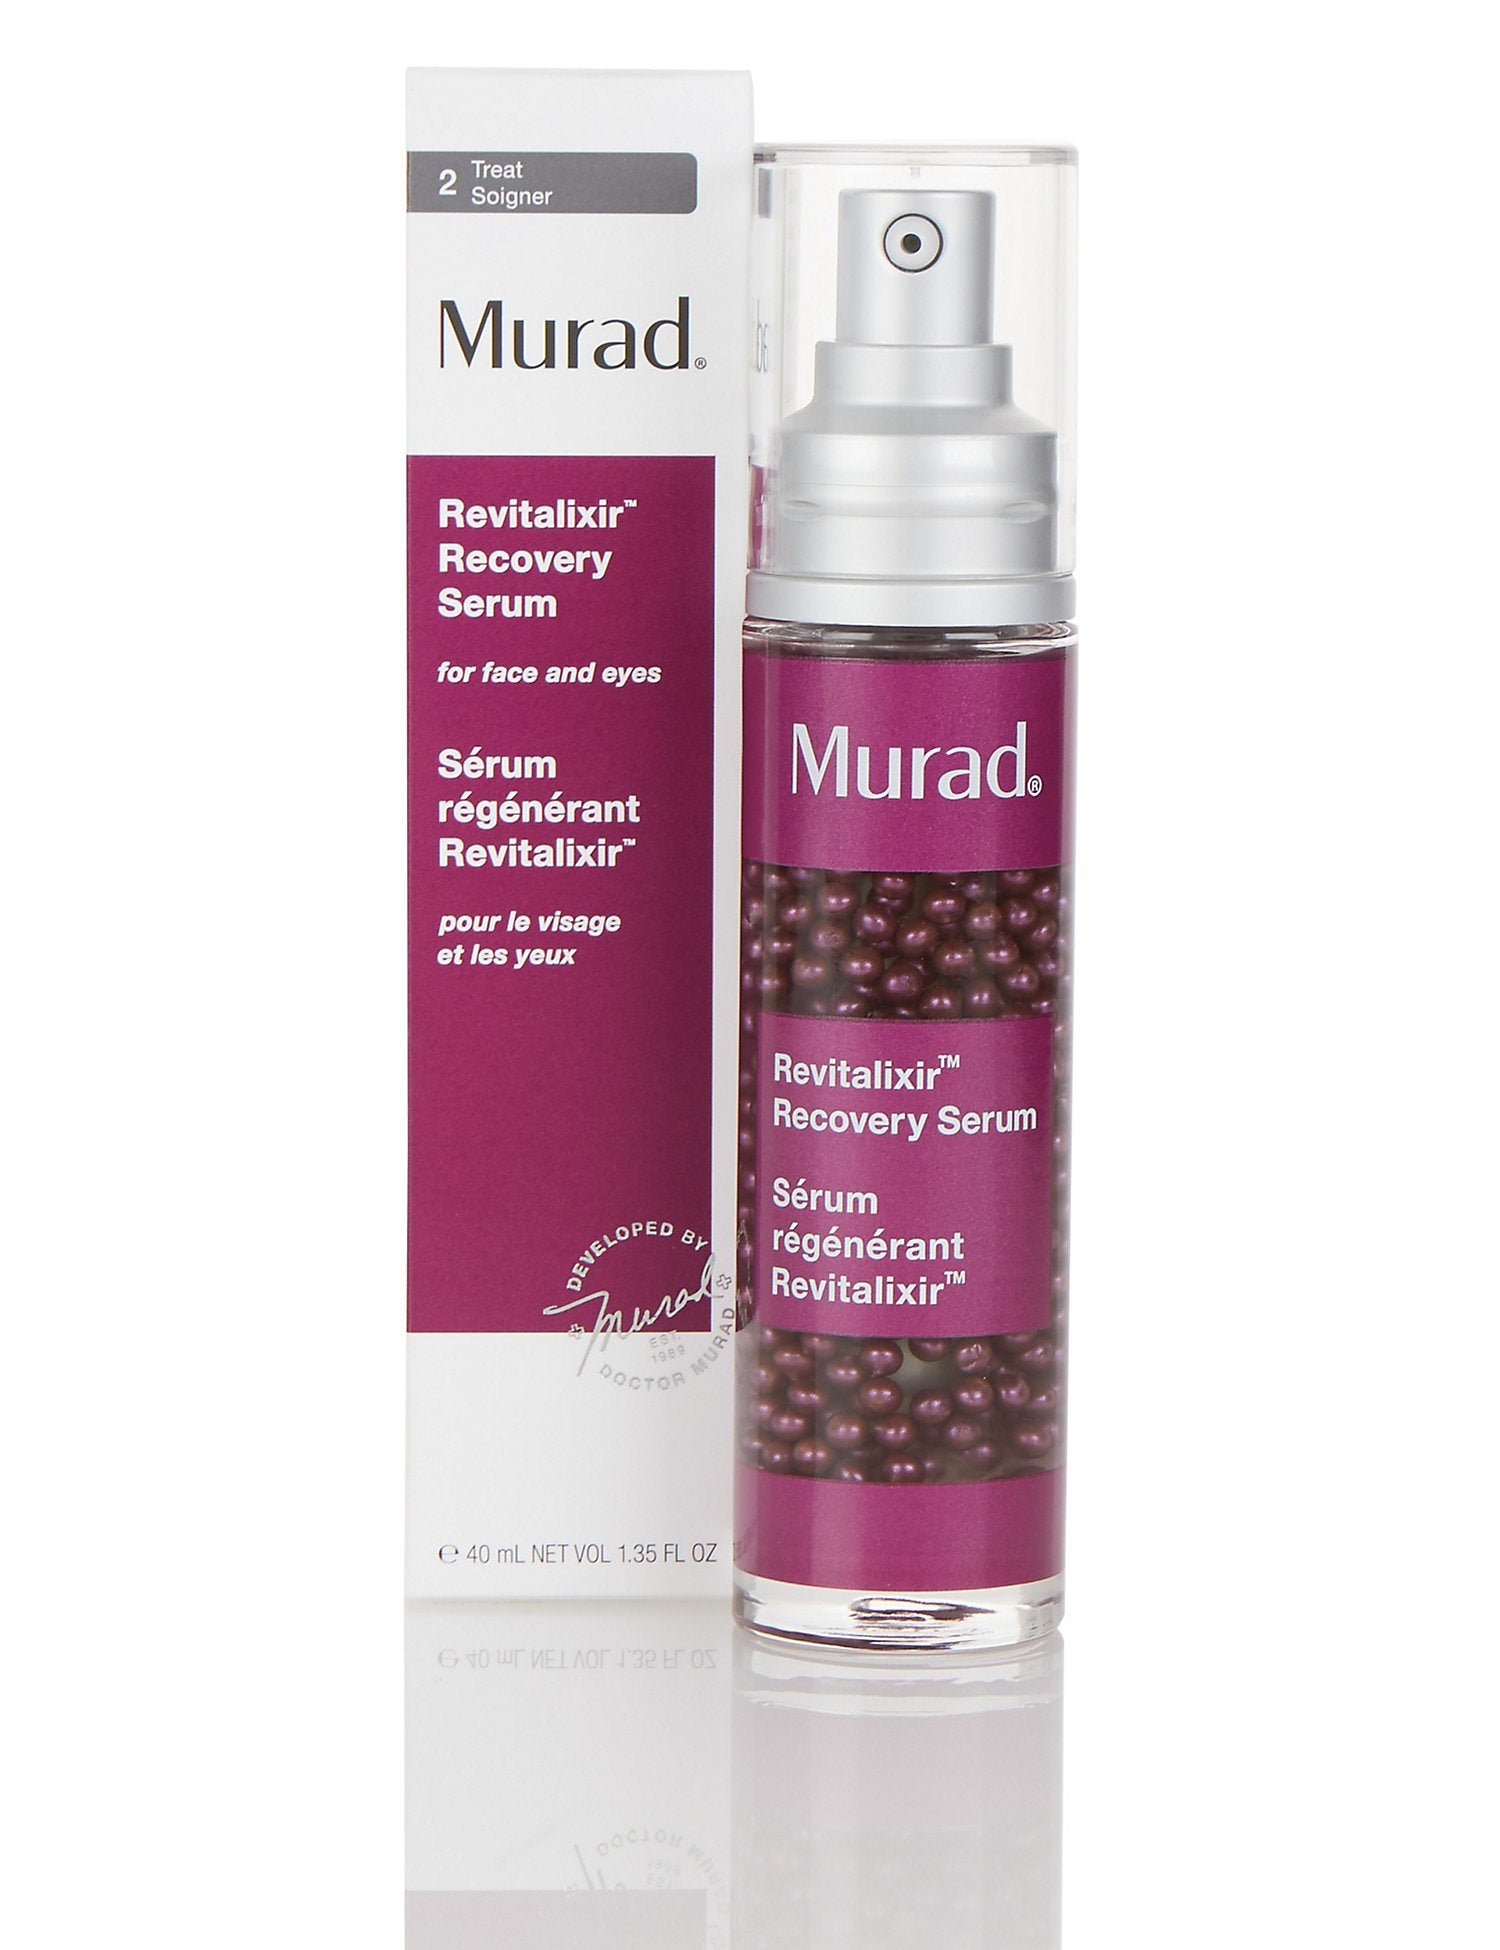 Revitalixir Recovery Serum - The Perfect Products